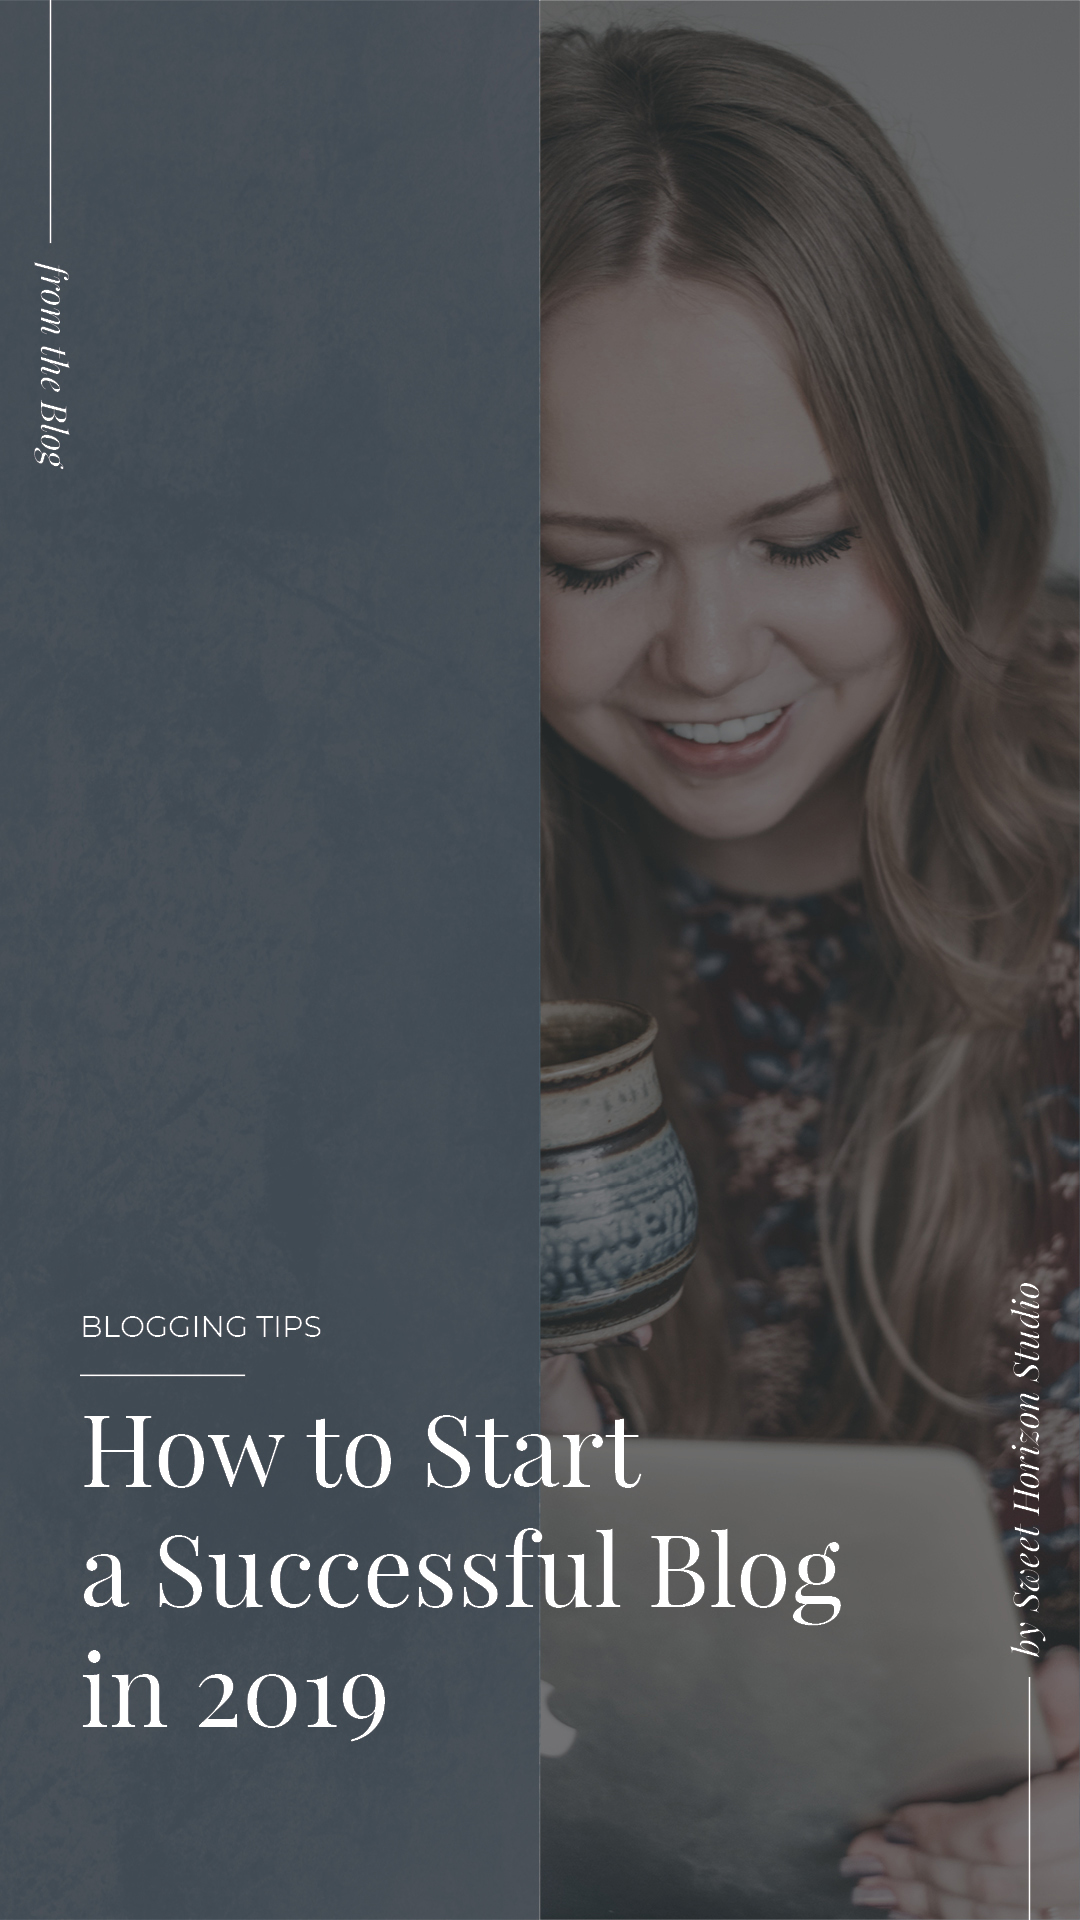 How to Start a Successful Blog in 2019 What To Do and What to Avoid from www.sweethorizonblog.com